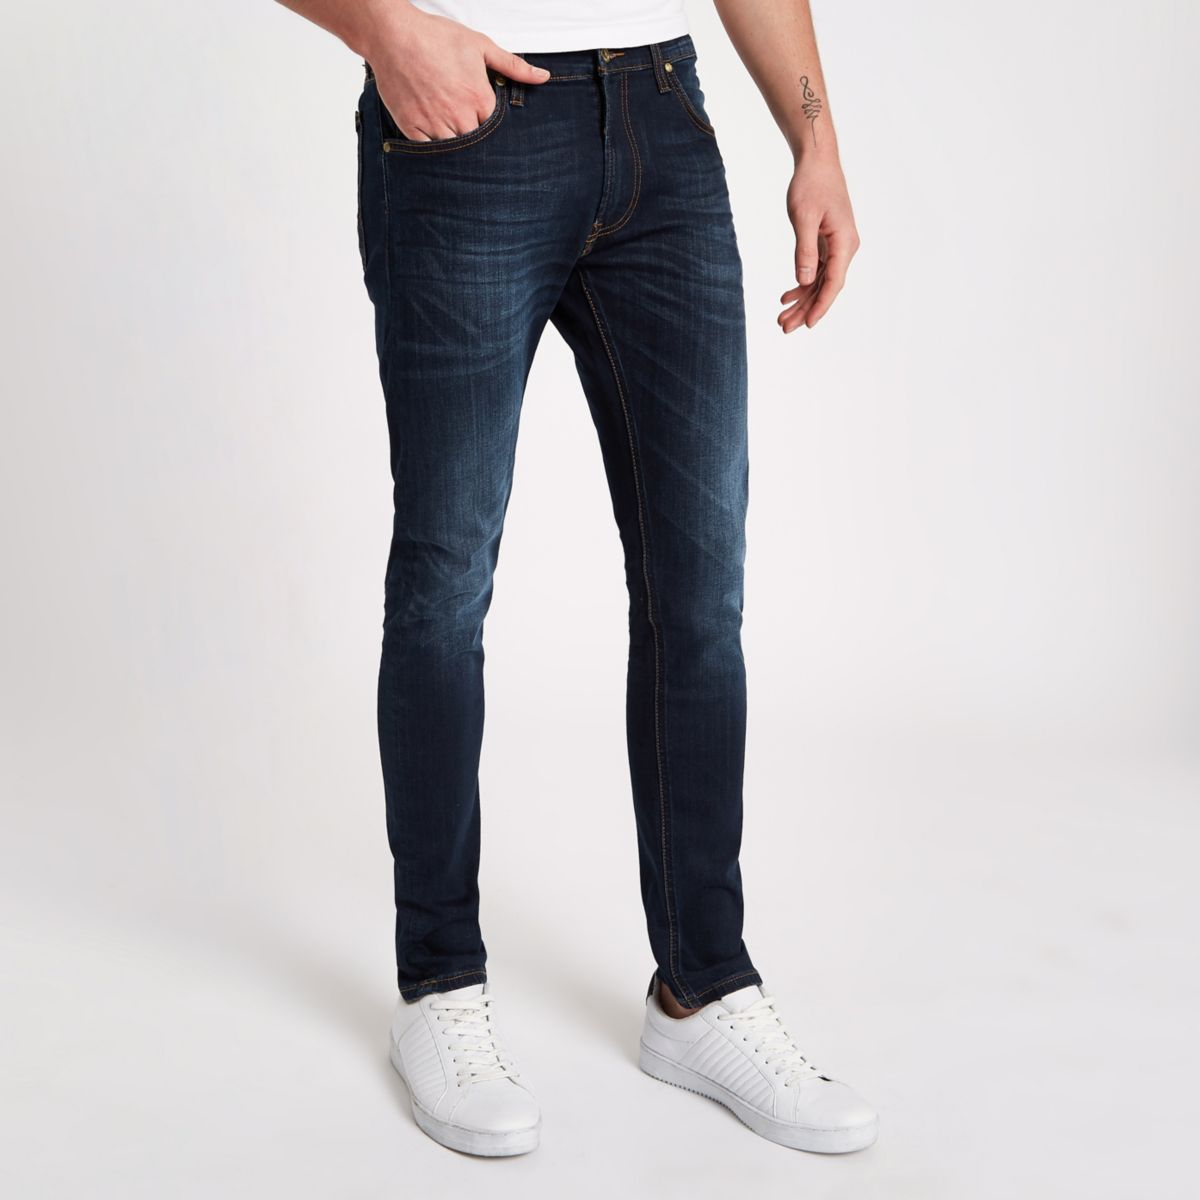 Lee - Luke - Blauwe smaltoelopende slim-fit jeans